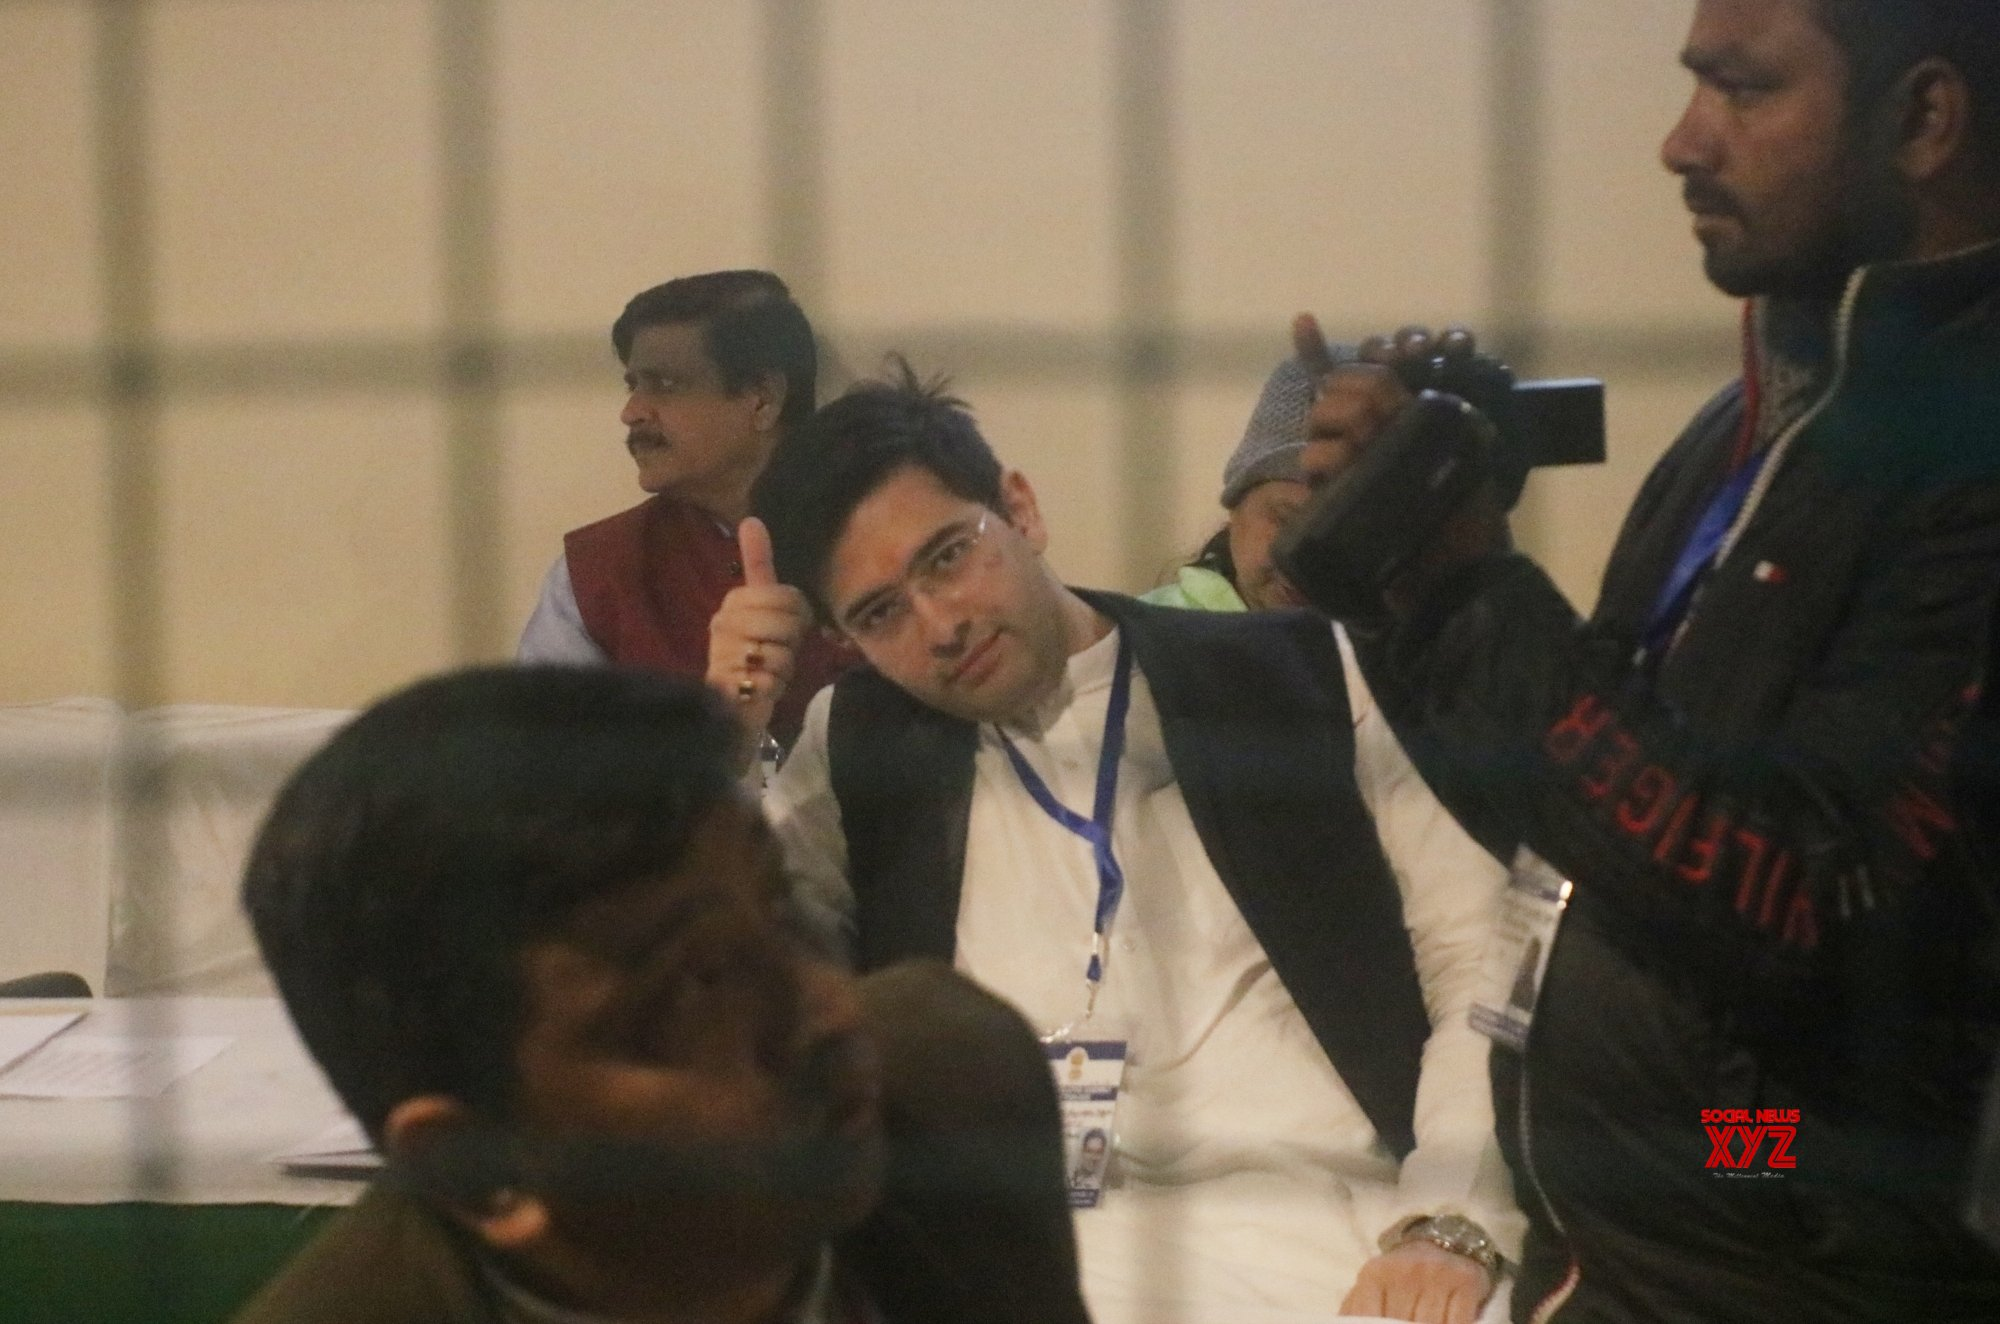 New Delhi: Counting begins for Delhi Assembly elections - Raghav Chadha at Gol Market counting centre #Gallery